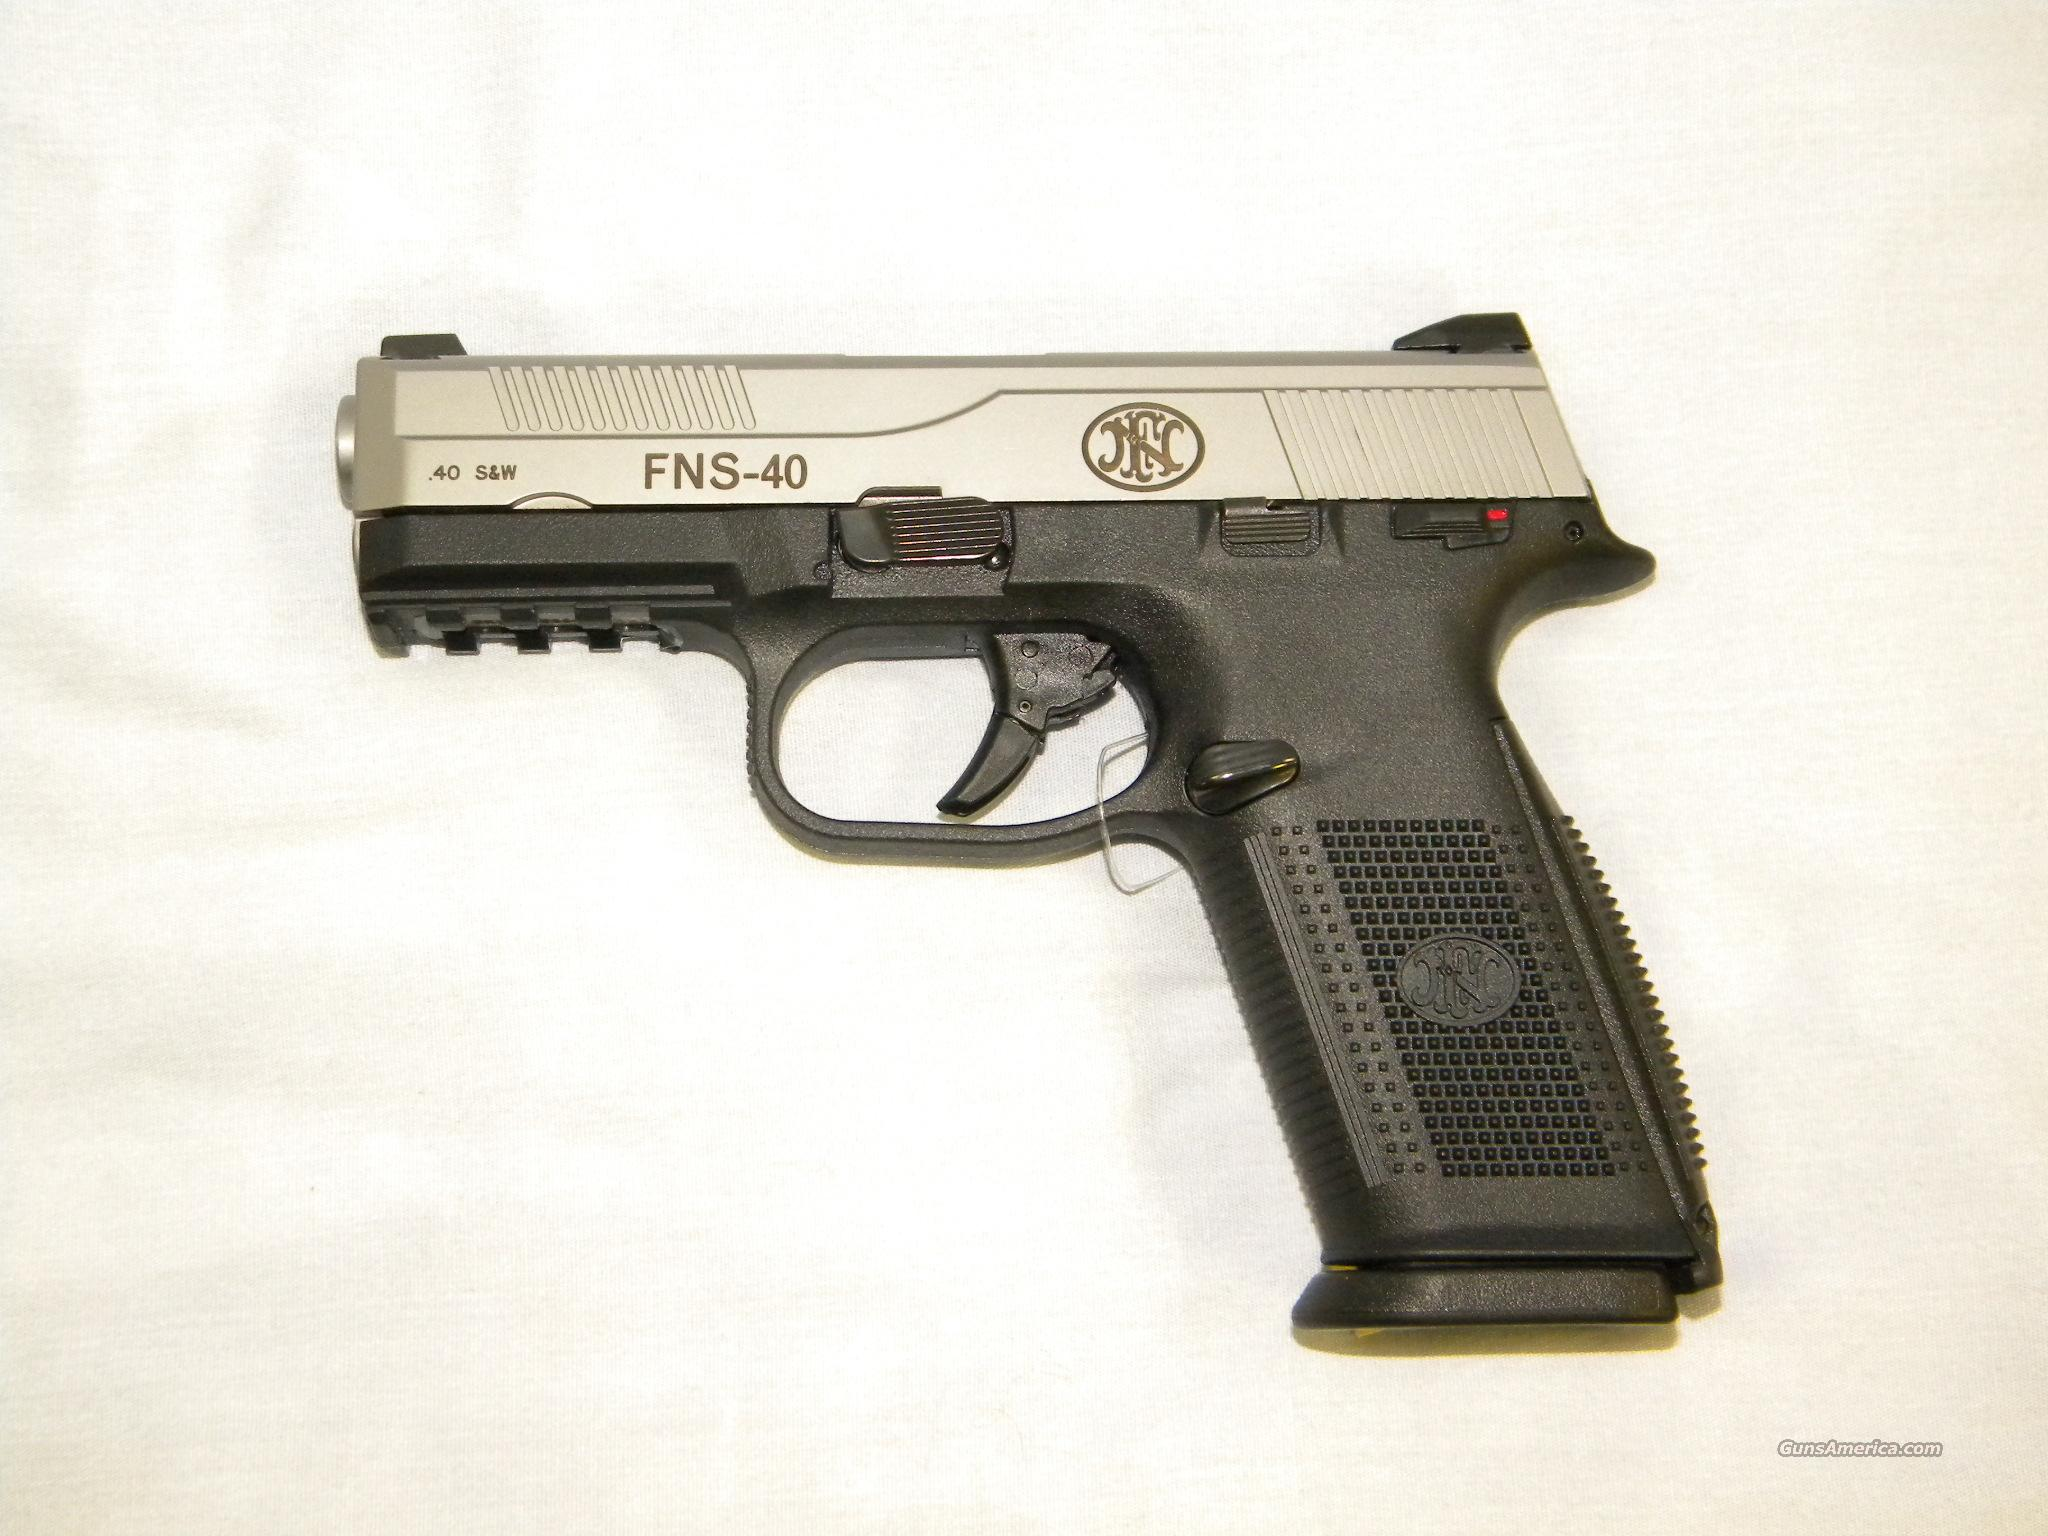 FNH FNS-40, .40 S&W, Brushed Stainless Slide  Guns > Pistols > FNH - Fabrique Nationale (FN) Pistols > FNP